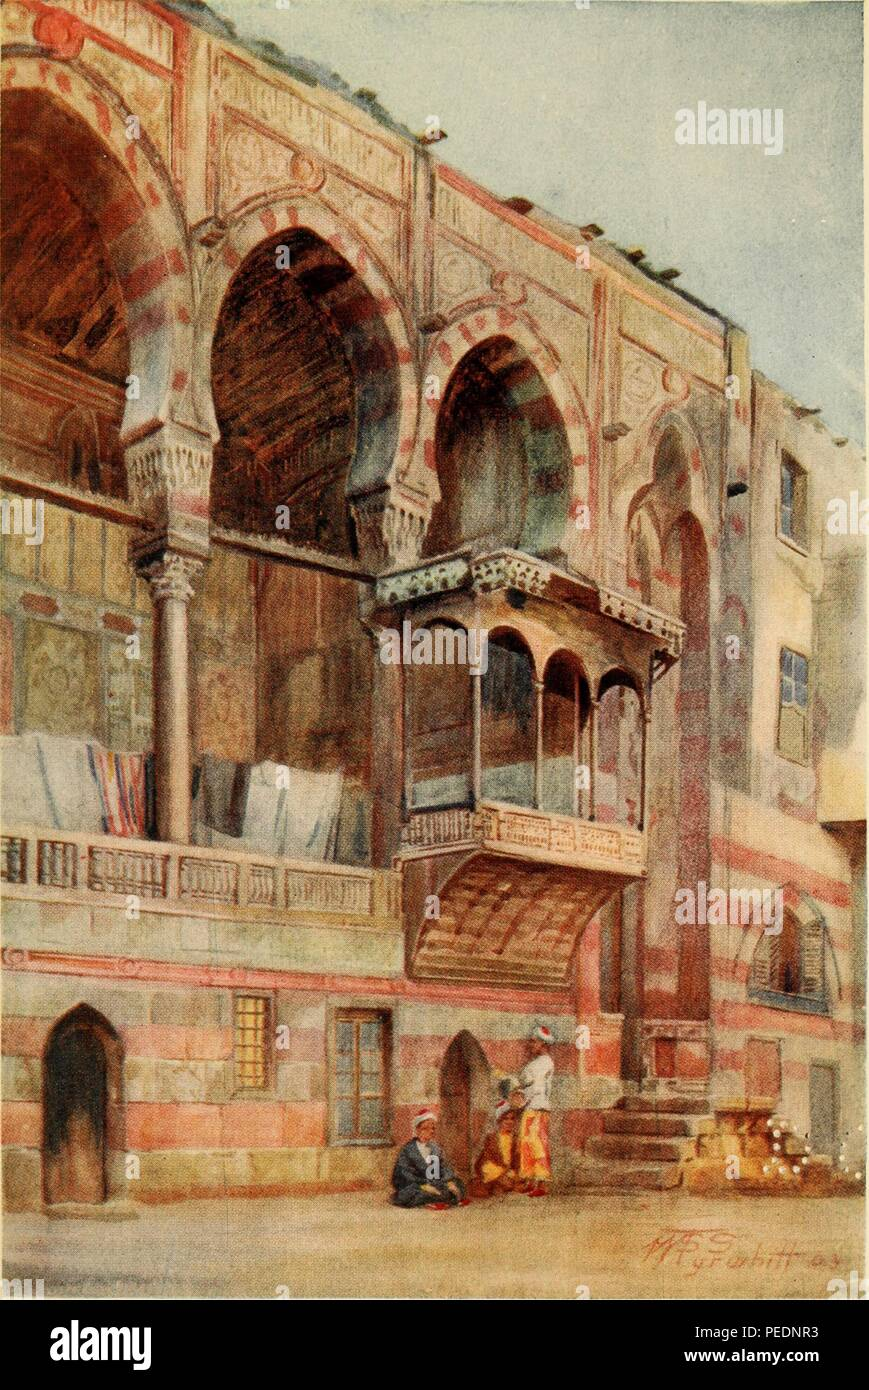 Color print depicting the external facade of the fifteenth-century funerary complex of Sultan al-Ashraf Qaytbay in Cairo, Egypt, built in the Mamluk style, with characteristically high arches and the ablaq technique which layers light and dark blocks of stone, 1912. Courtesy Internet Archive. () - Stock Image